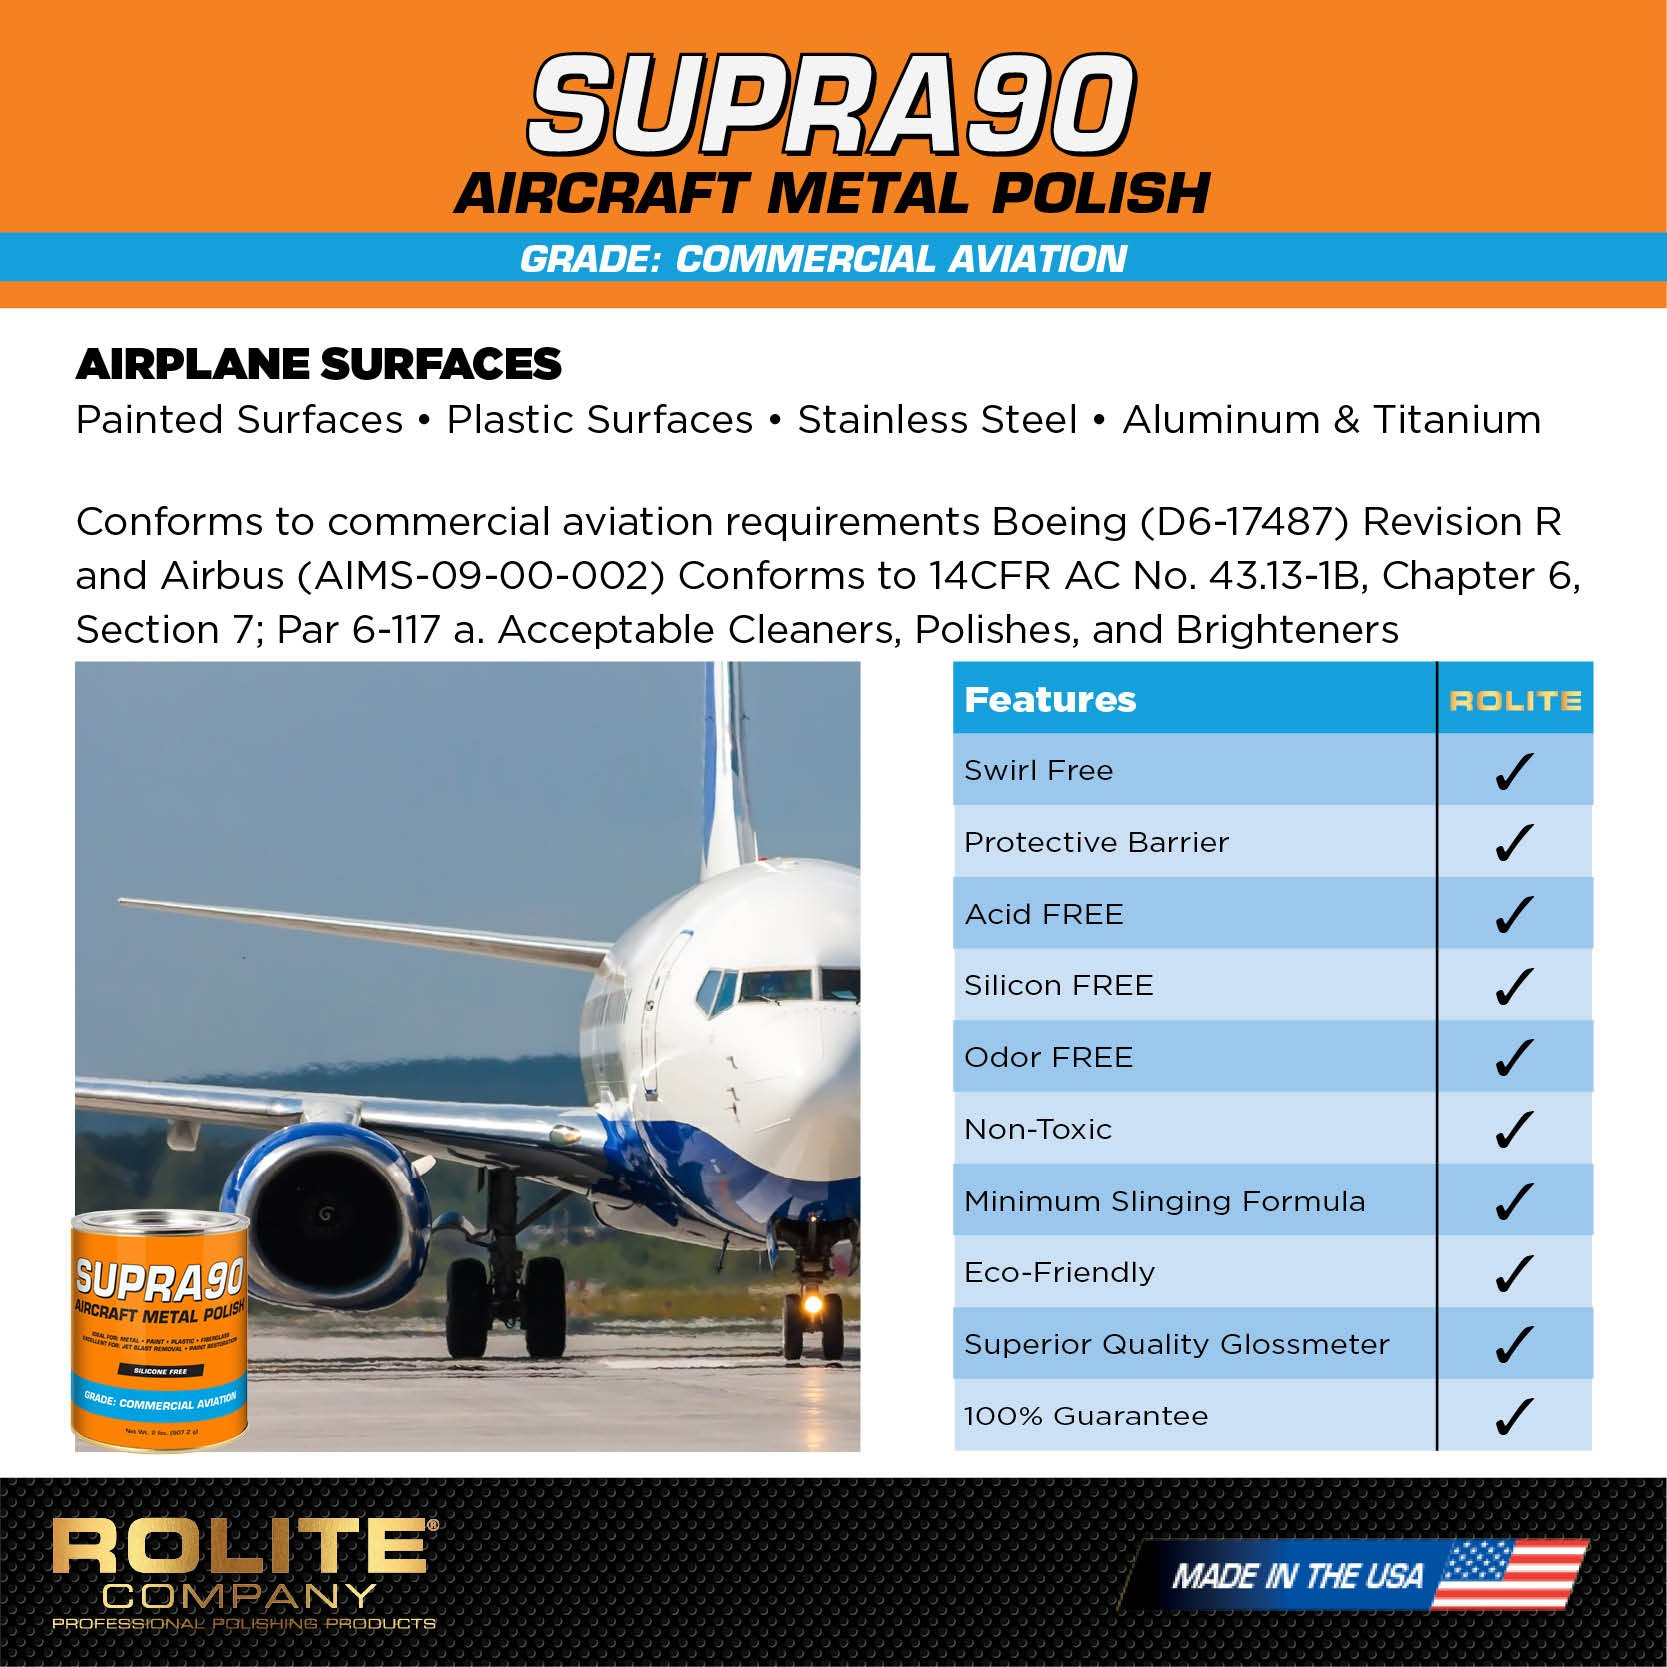 Supra90 Aircraft Metal Polish (4.5oz) for Airplane Painted Surfaces - Removes Jet Blast & Fuel Stains, Meets Boeing and Airbus Requirements